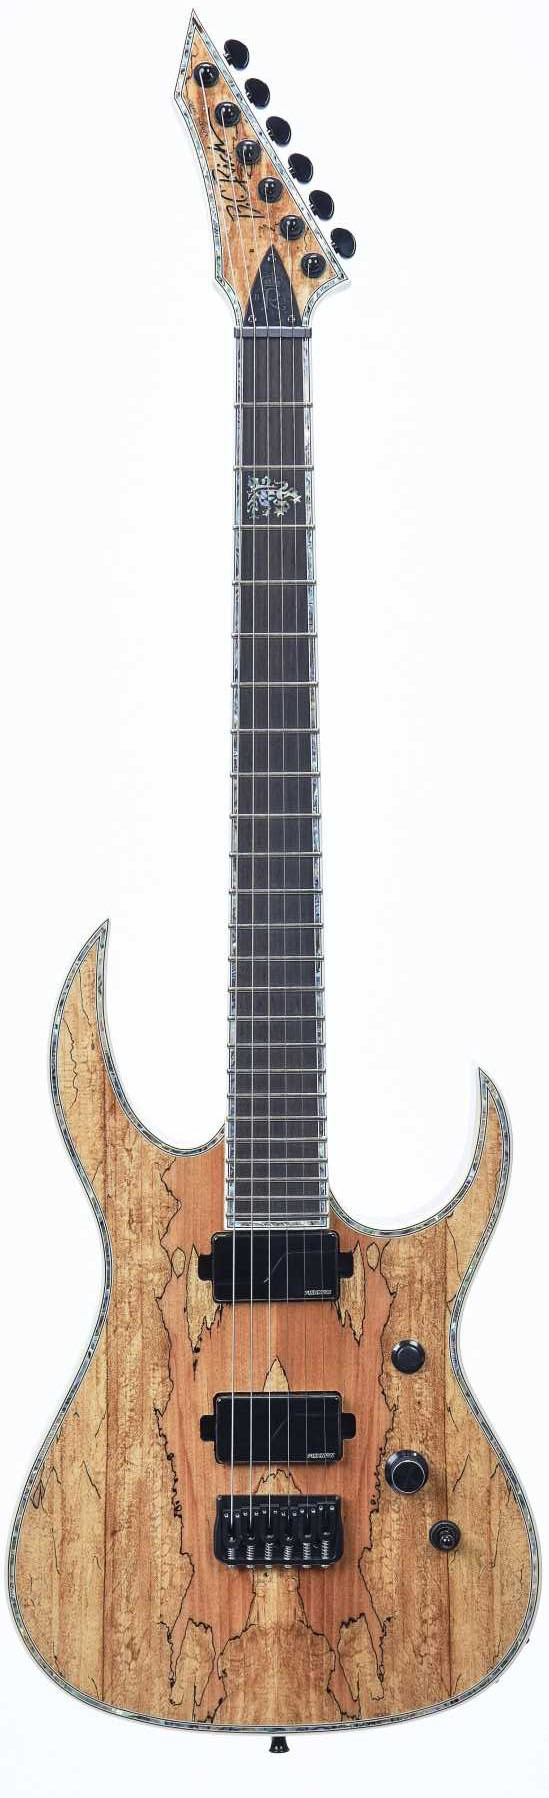 B.C. Rich Shredzilla Extreme Exotic with Hipshot - Spalted Maple